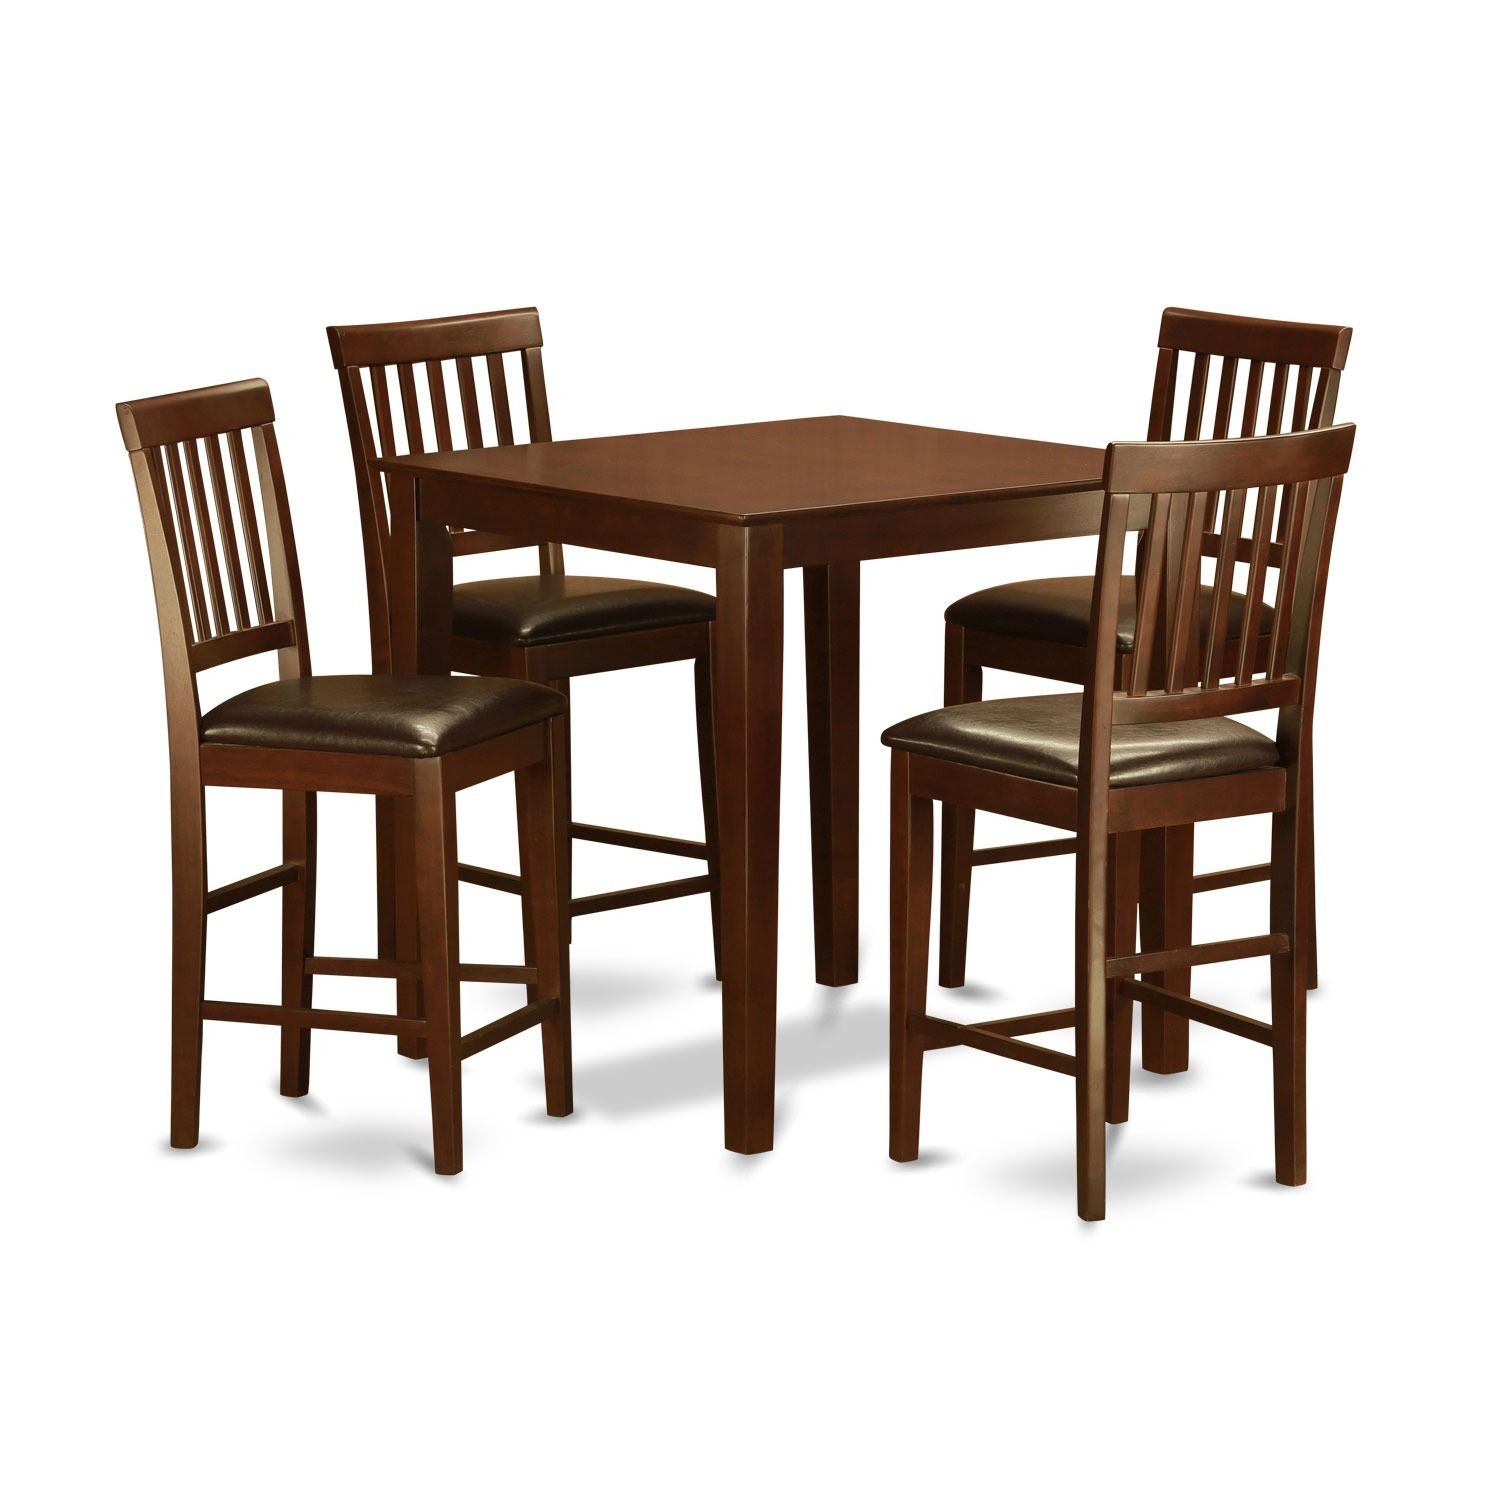 5 piece Counter Height Table Set Table and 4 Kitchen Chairs